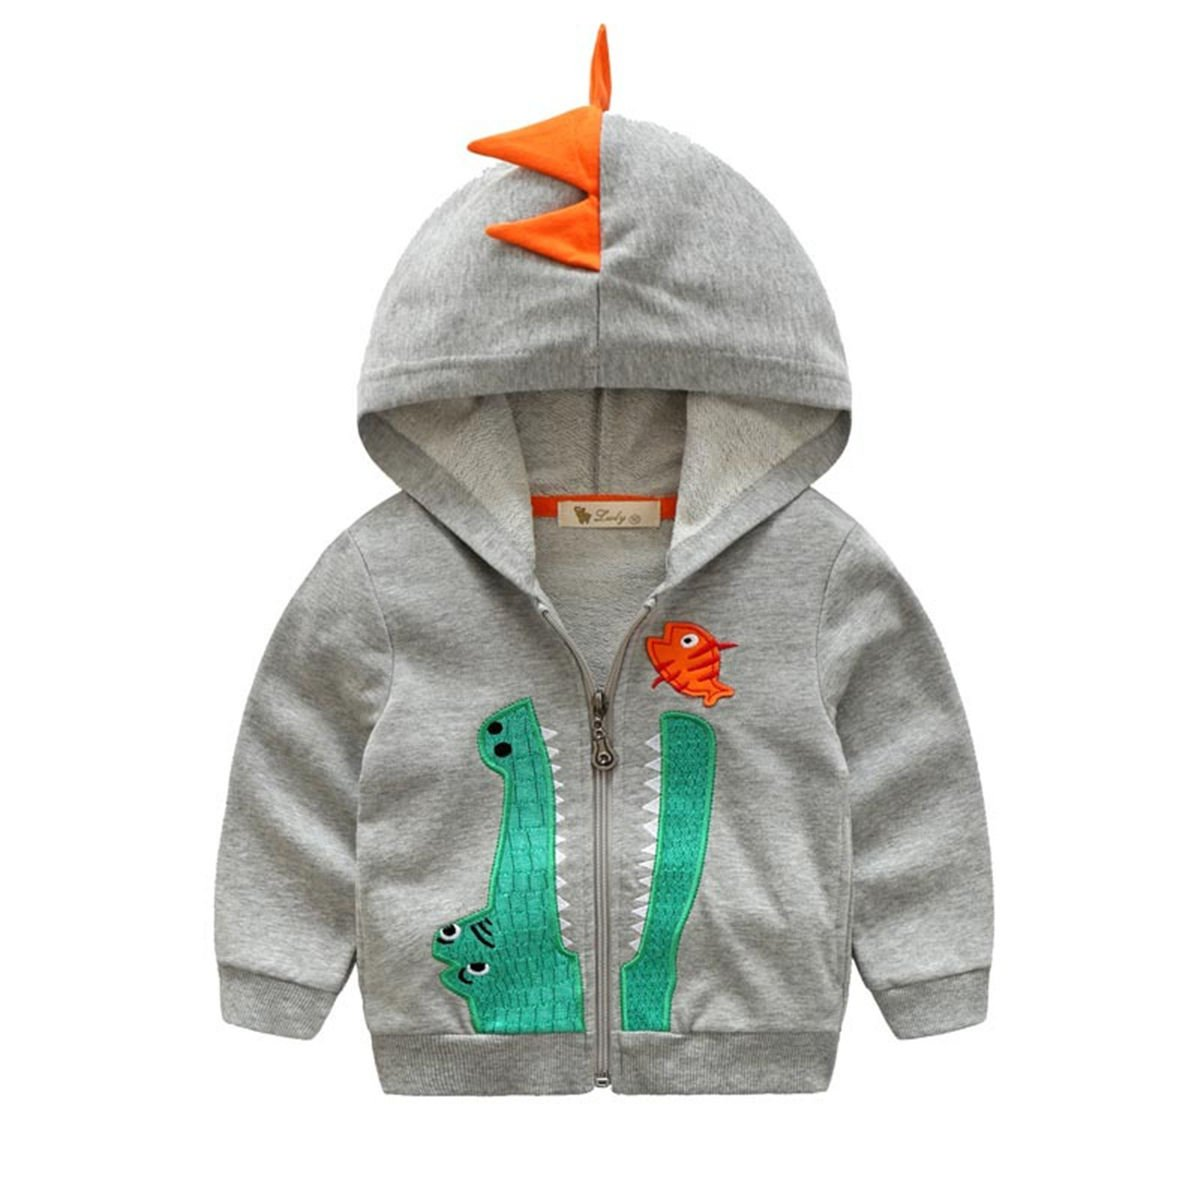 Baby Boys Long Sleeve Dinosaur Hoodies Kids Sweatshirt Toddler Zip-up Jacket, Light Gray,12-18 Months BC0647-Light gray-80